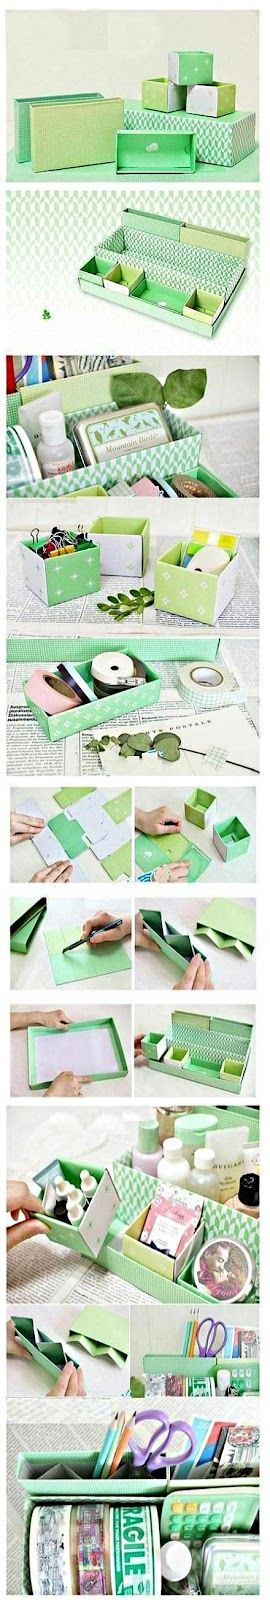 Cute site with DIY projects. Love this organizer for the desk or bedside table.